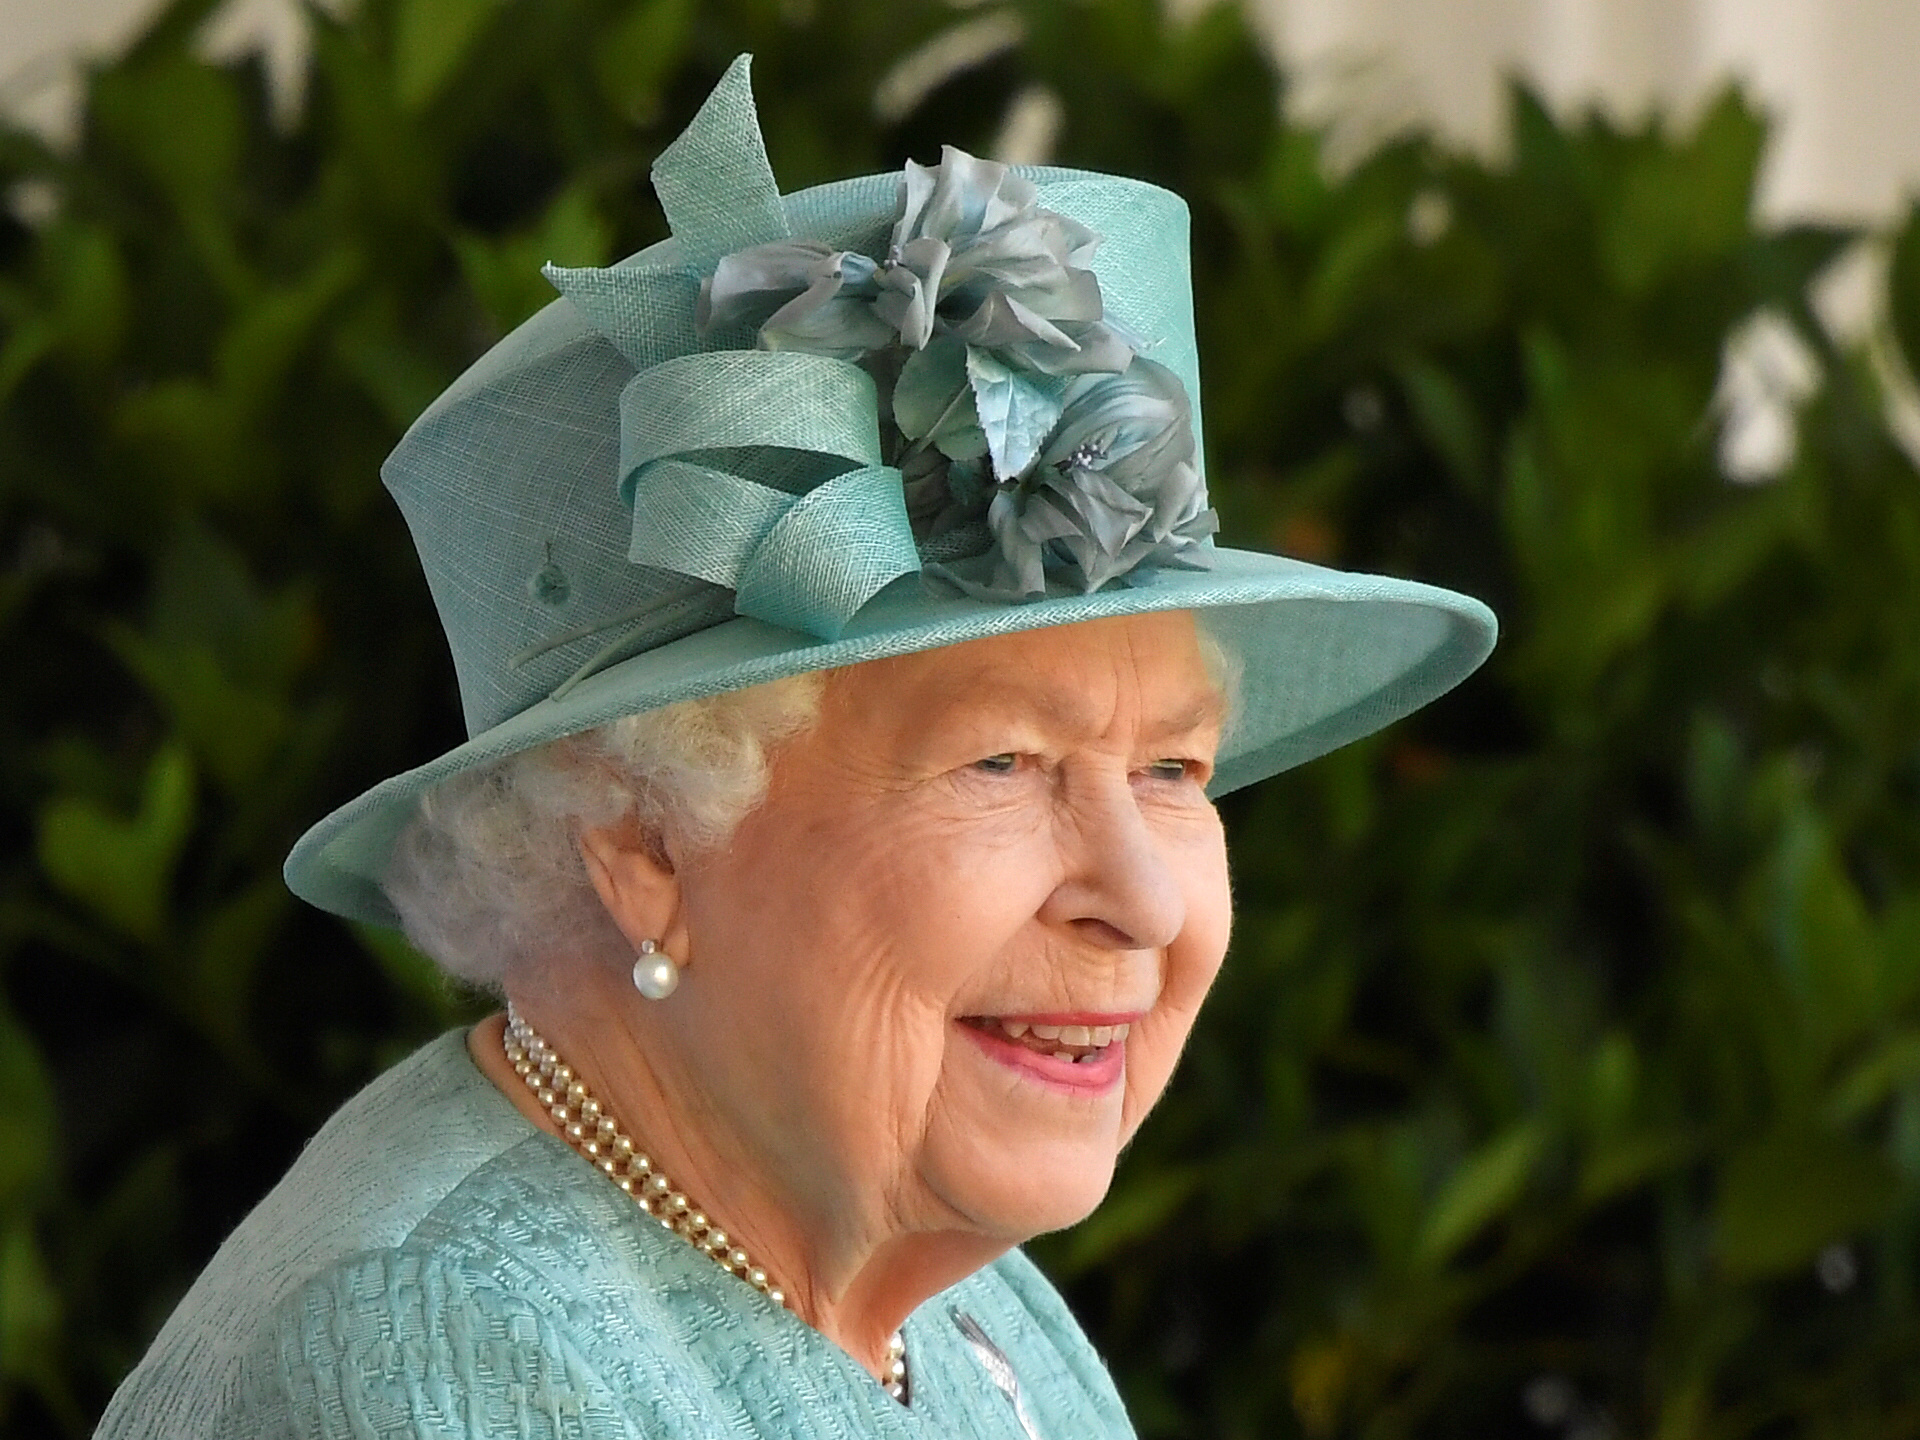 Britain's Queen Elizabeth attends a ceremony to mark her official birthday at Windsor Castle in Windsor, Britain, June 13, 2020. REUTERS/Toby Melville/Pool